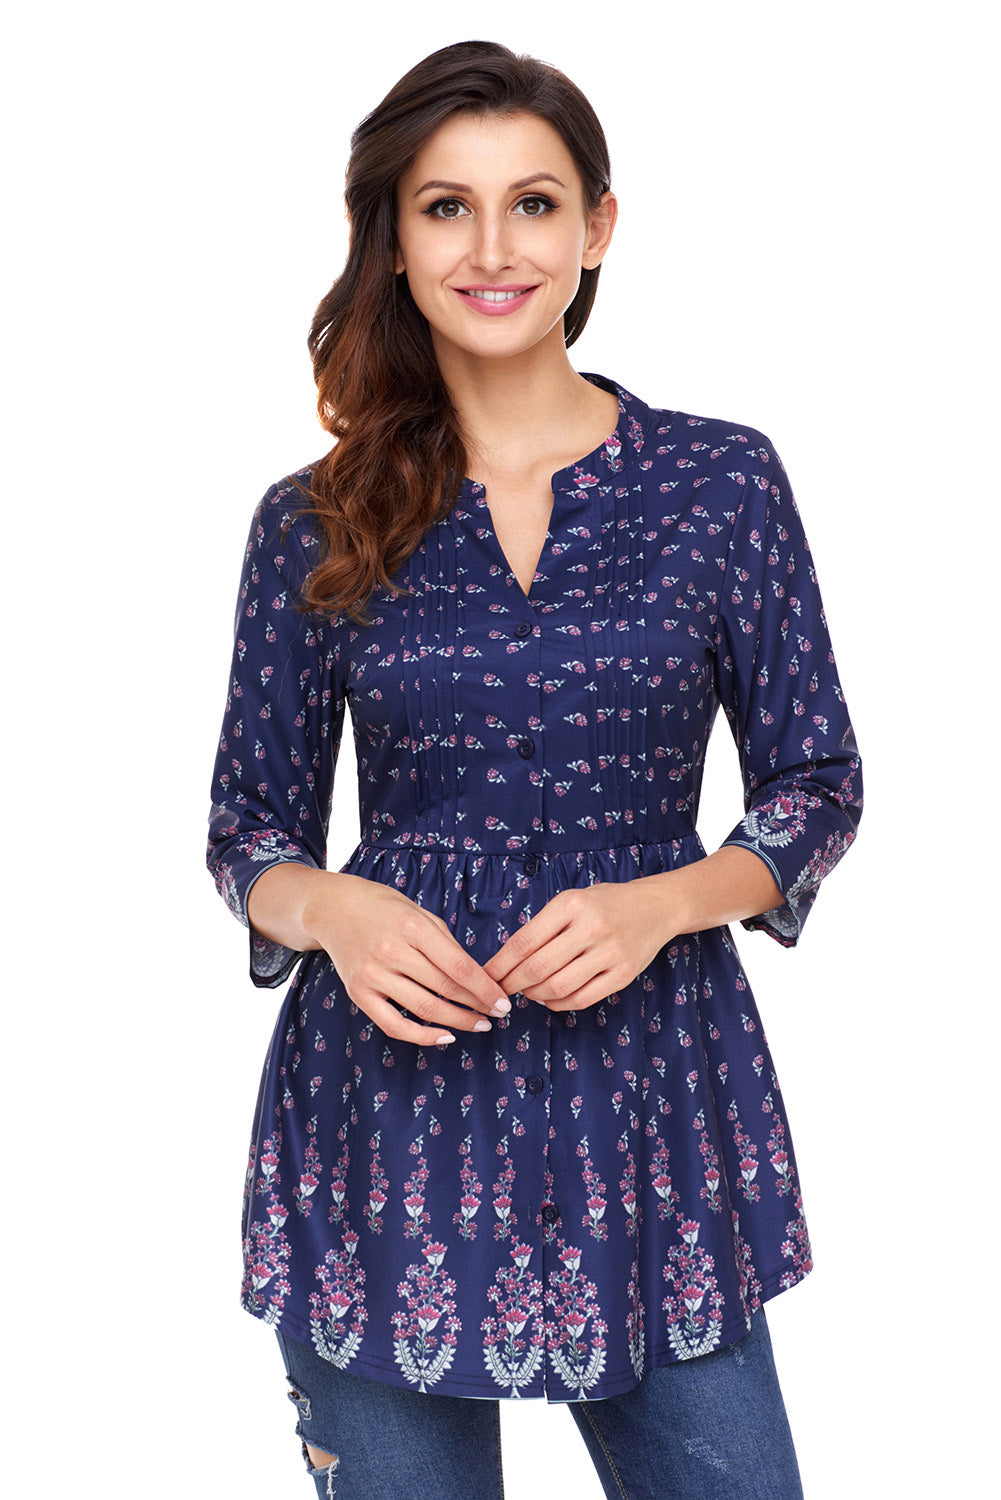 Peacock Floral Navy Chiffon Button-Down Pin Tuck Tunic